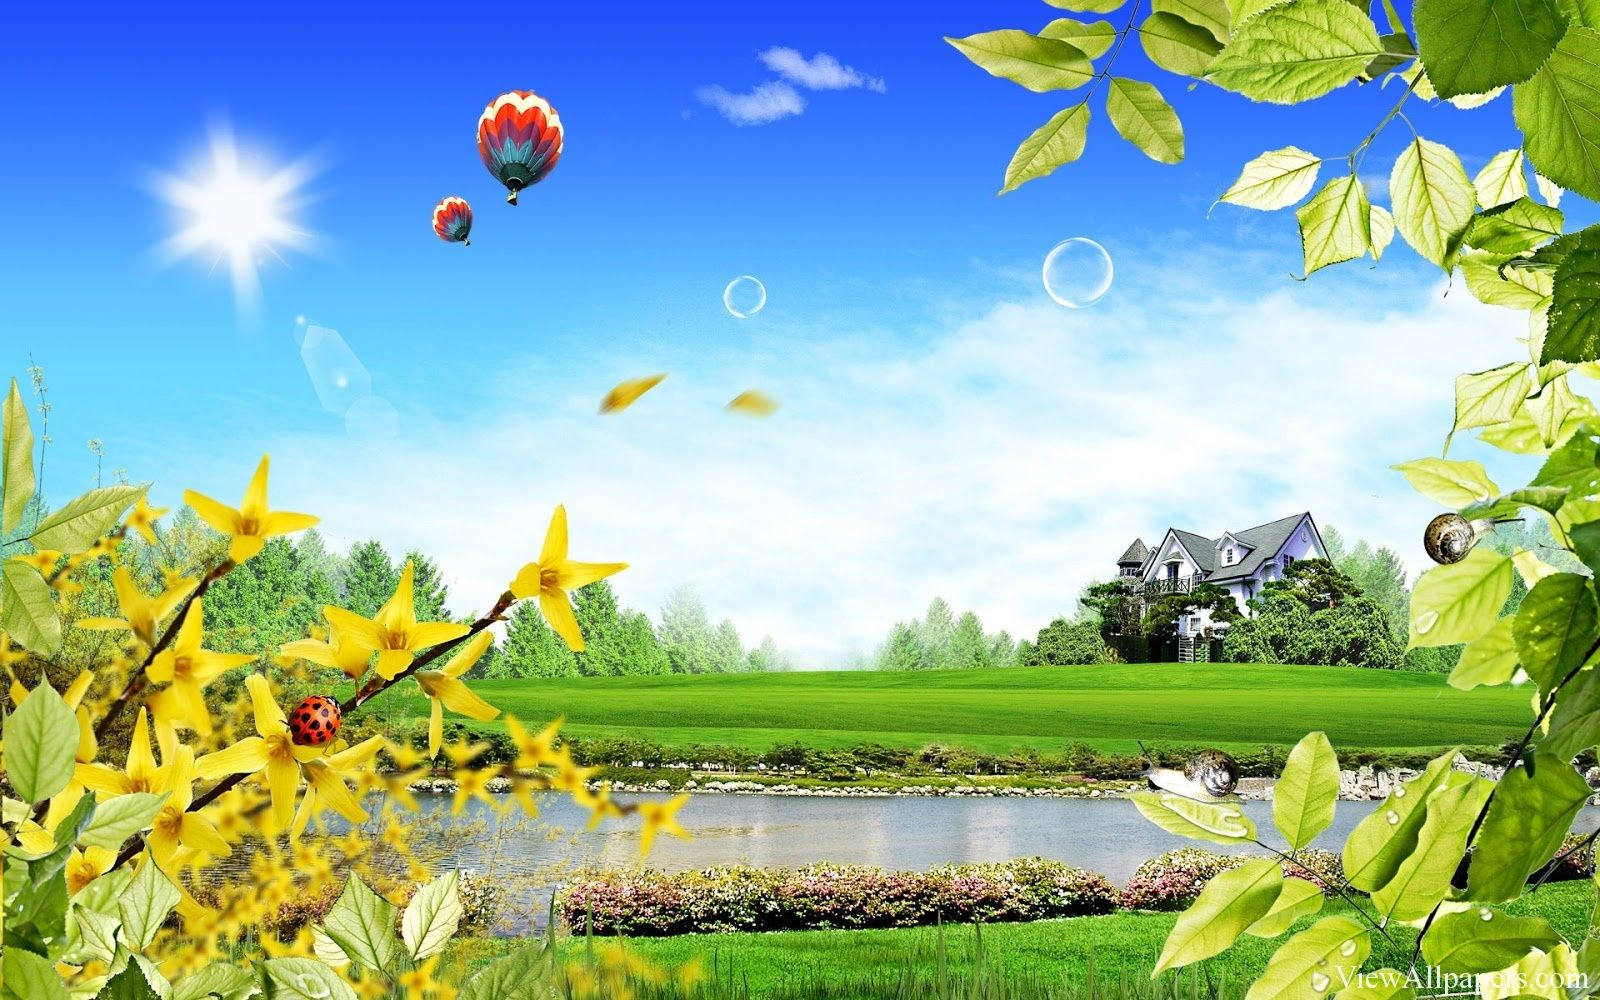 Nature wallpaper for computer desktop - Cool Nature 3d Wallpaper